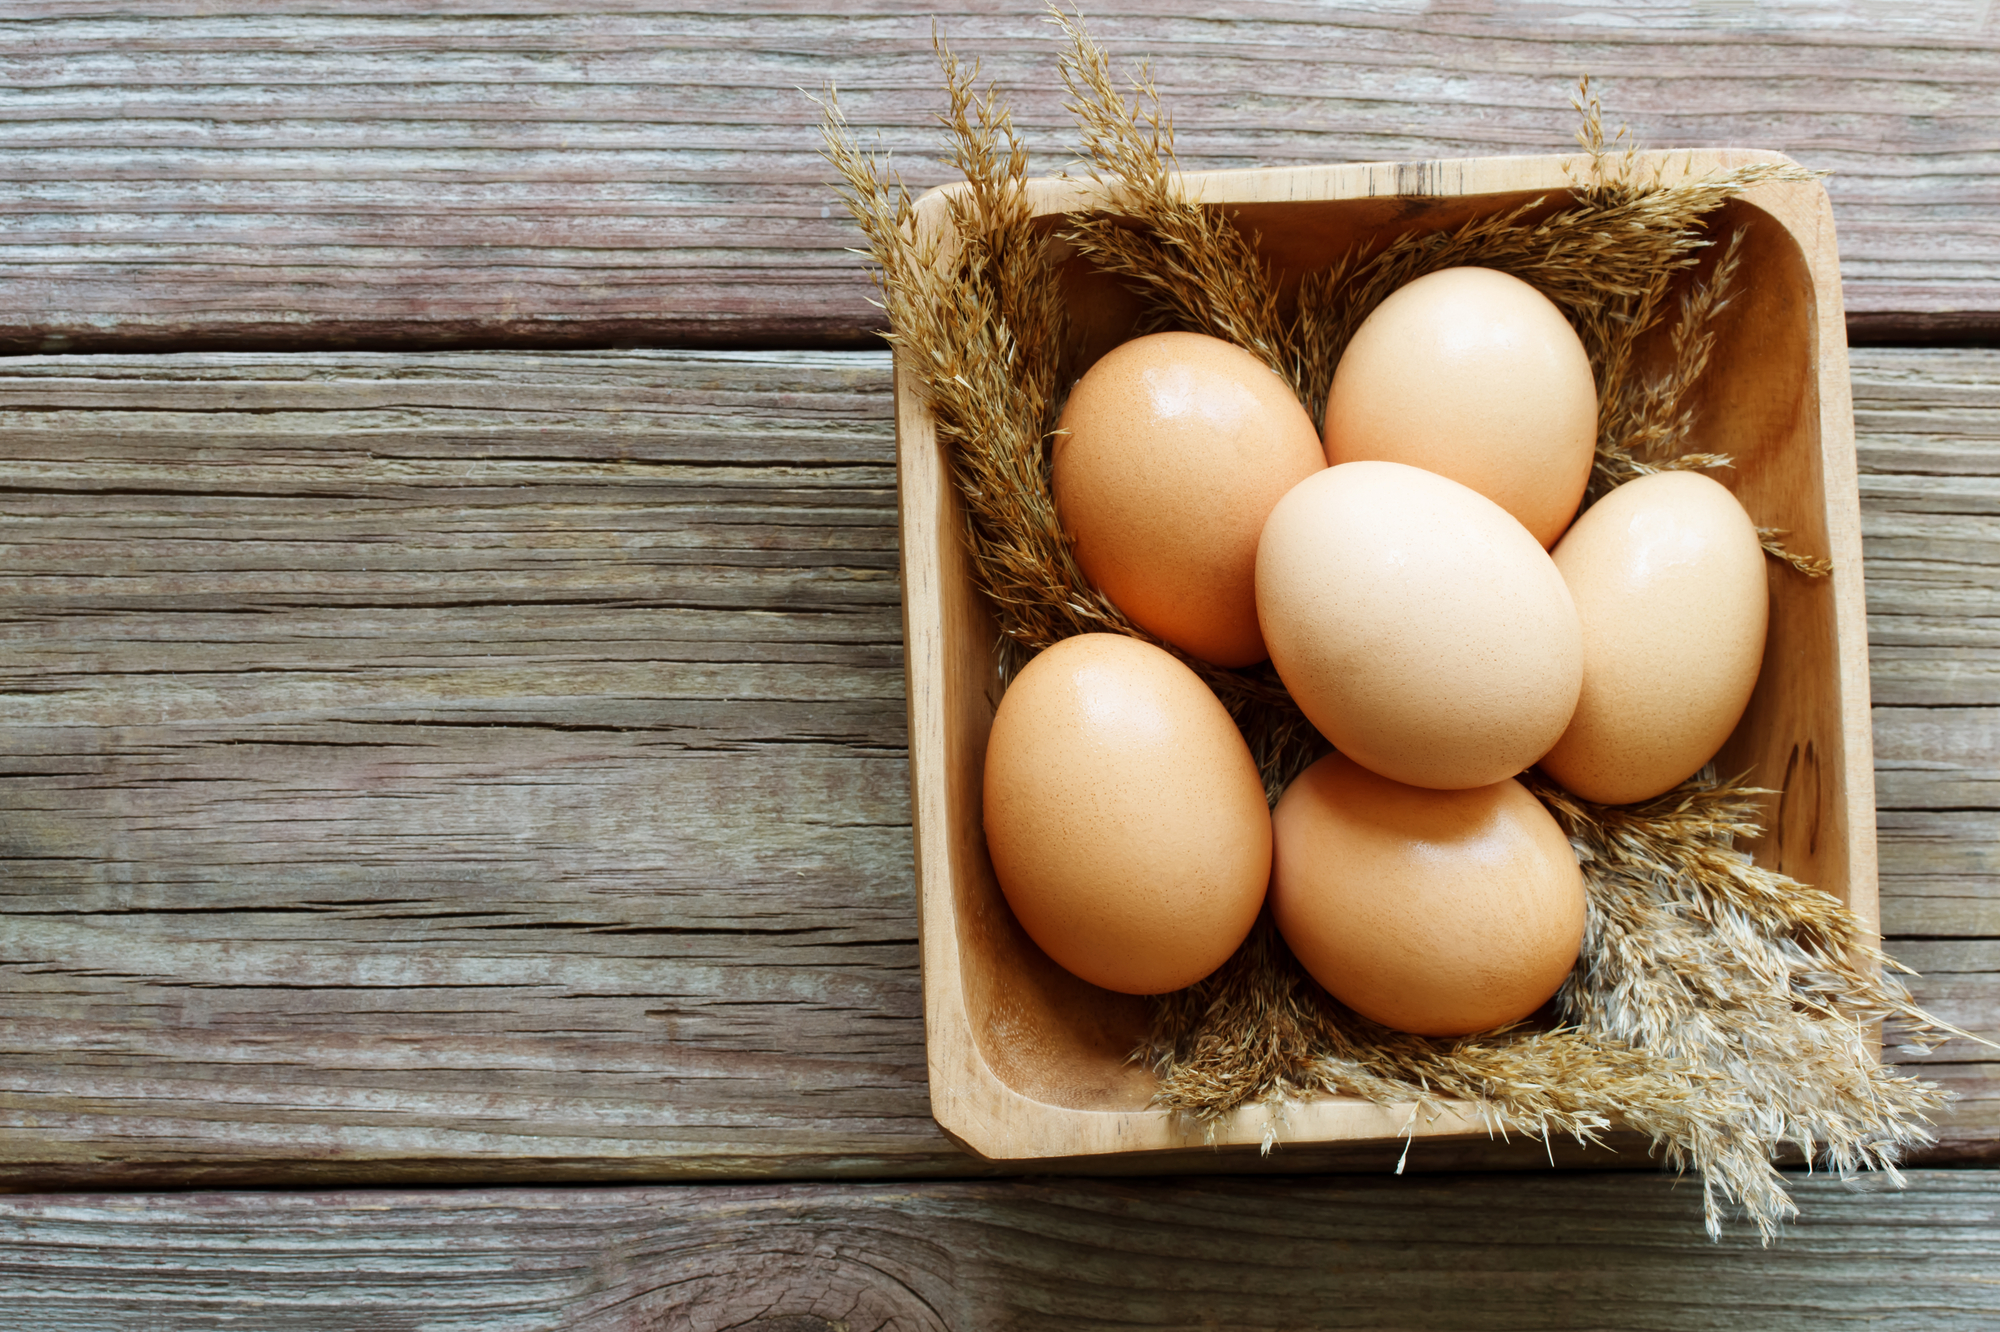 Eggs - Omega 3 Eggs. Are They Worth It?